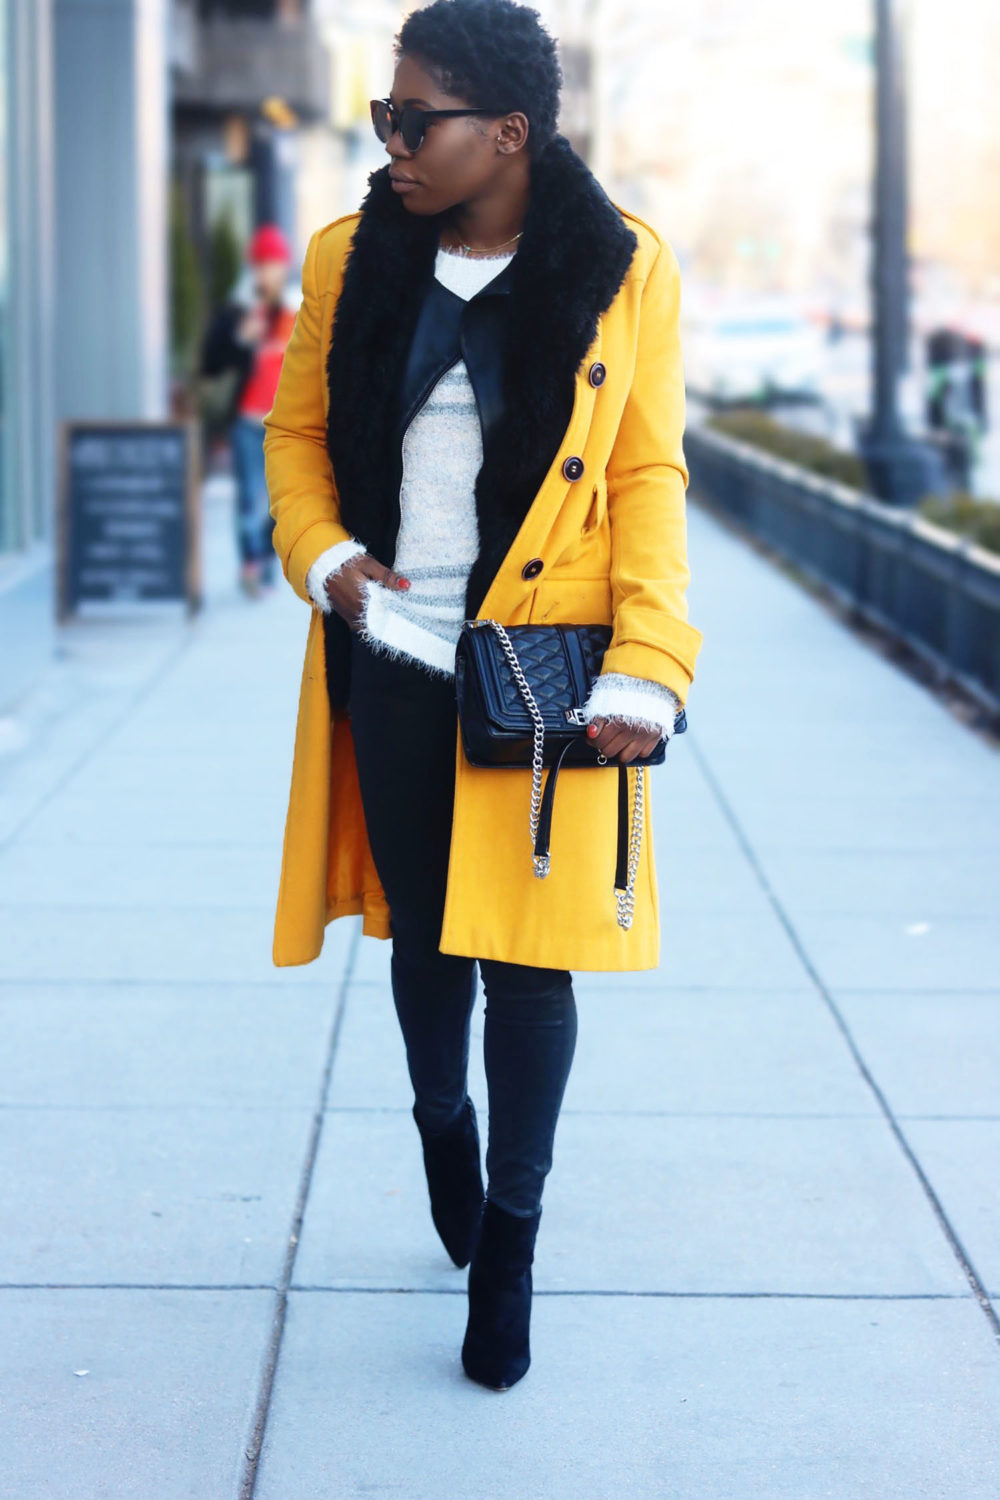 style-synopsis-vibrant-trench-coat-sweater-style